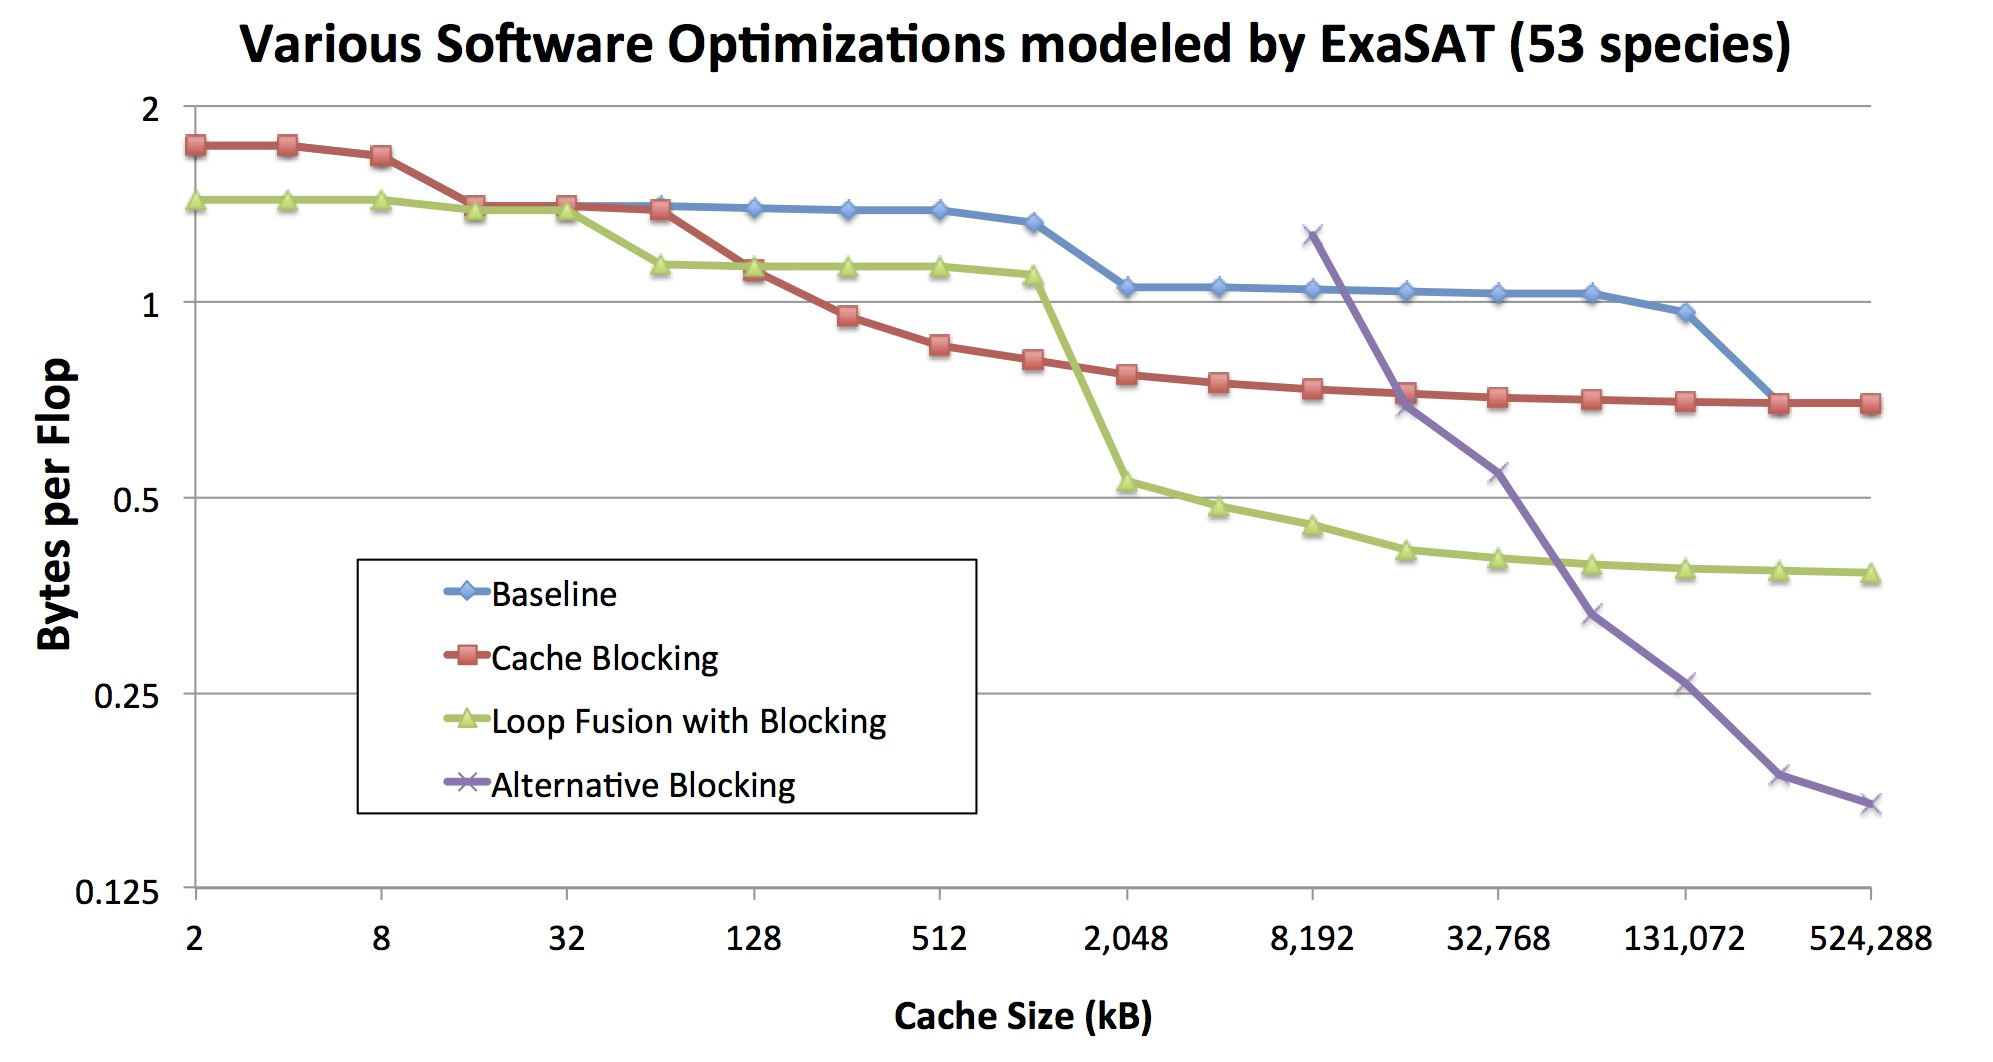 ExaSAT Software Optimizations